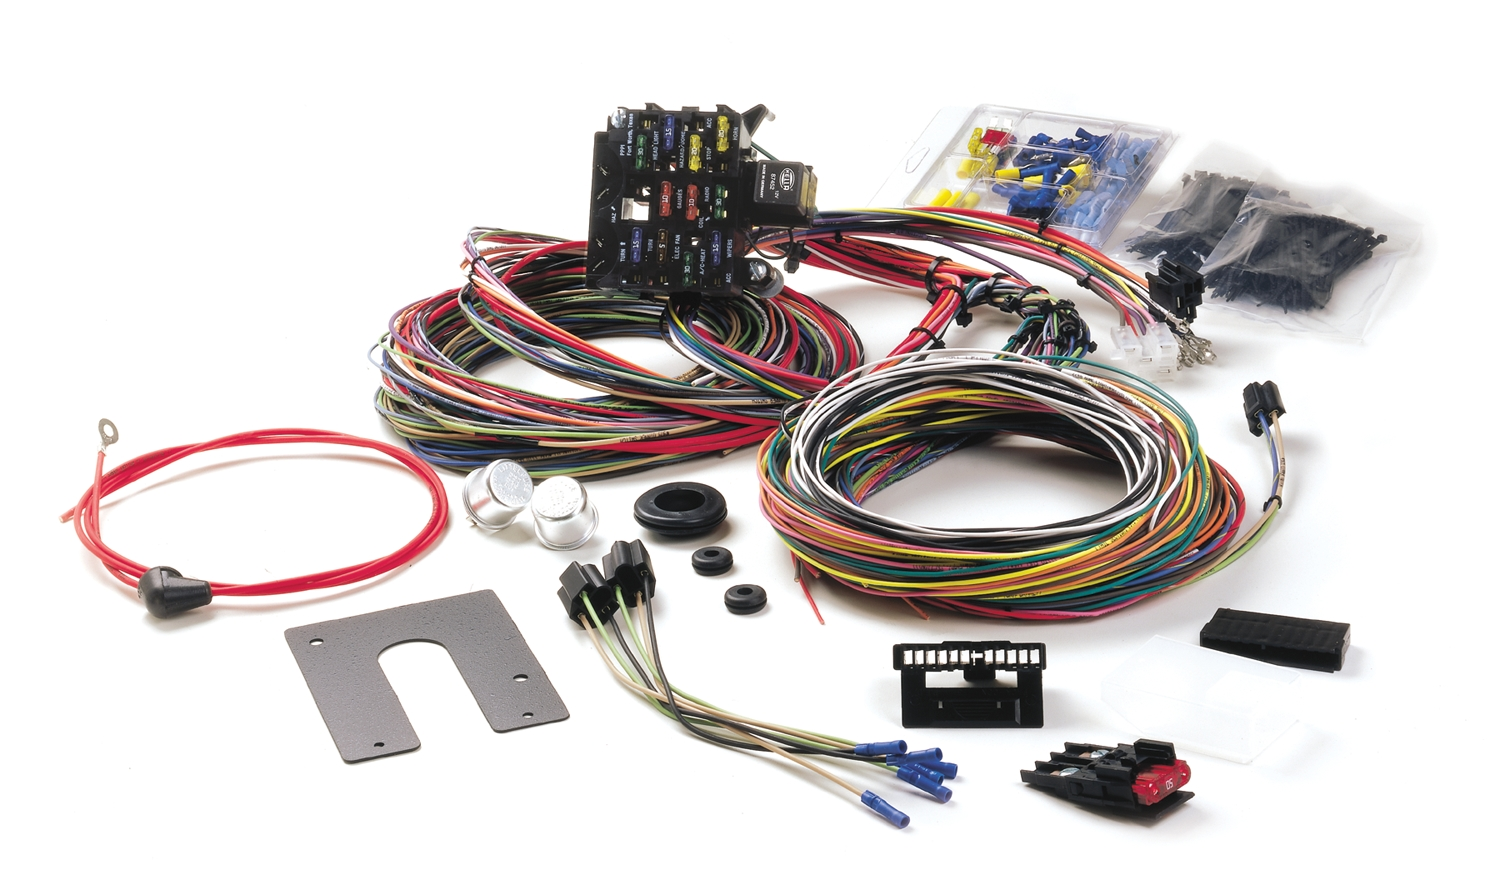 Ford Wiring Harness Kits Wire Center E40d Painless Performance In 39 Rh Hotrodhotline Com Truck Kit For 1986 F150